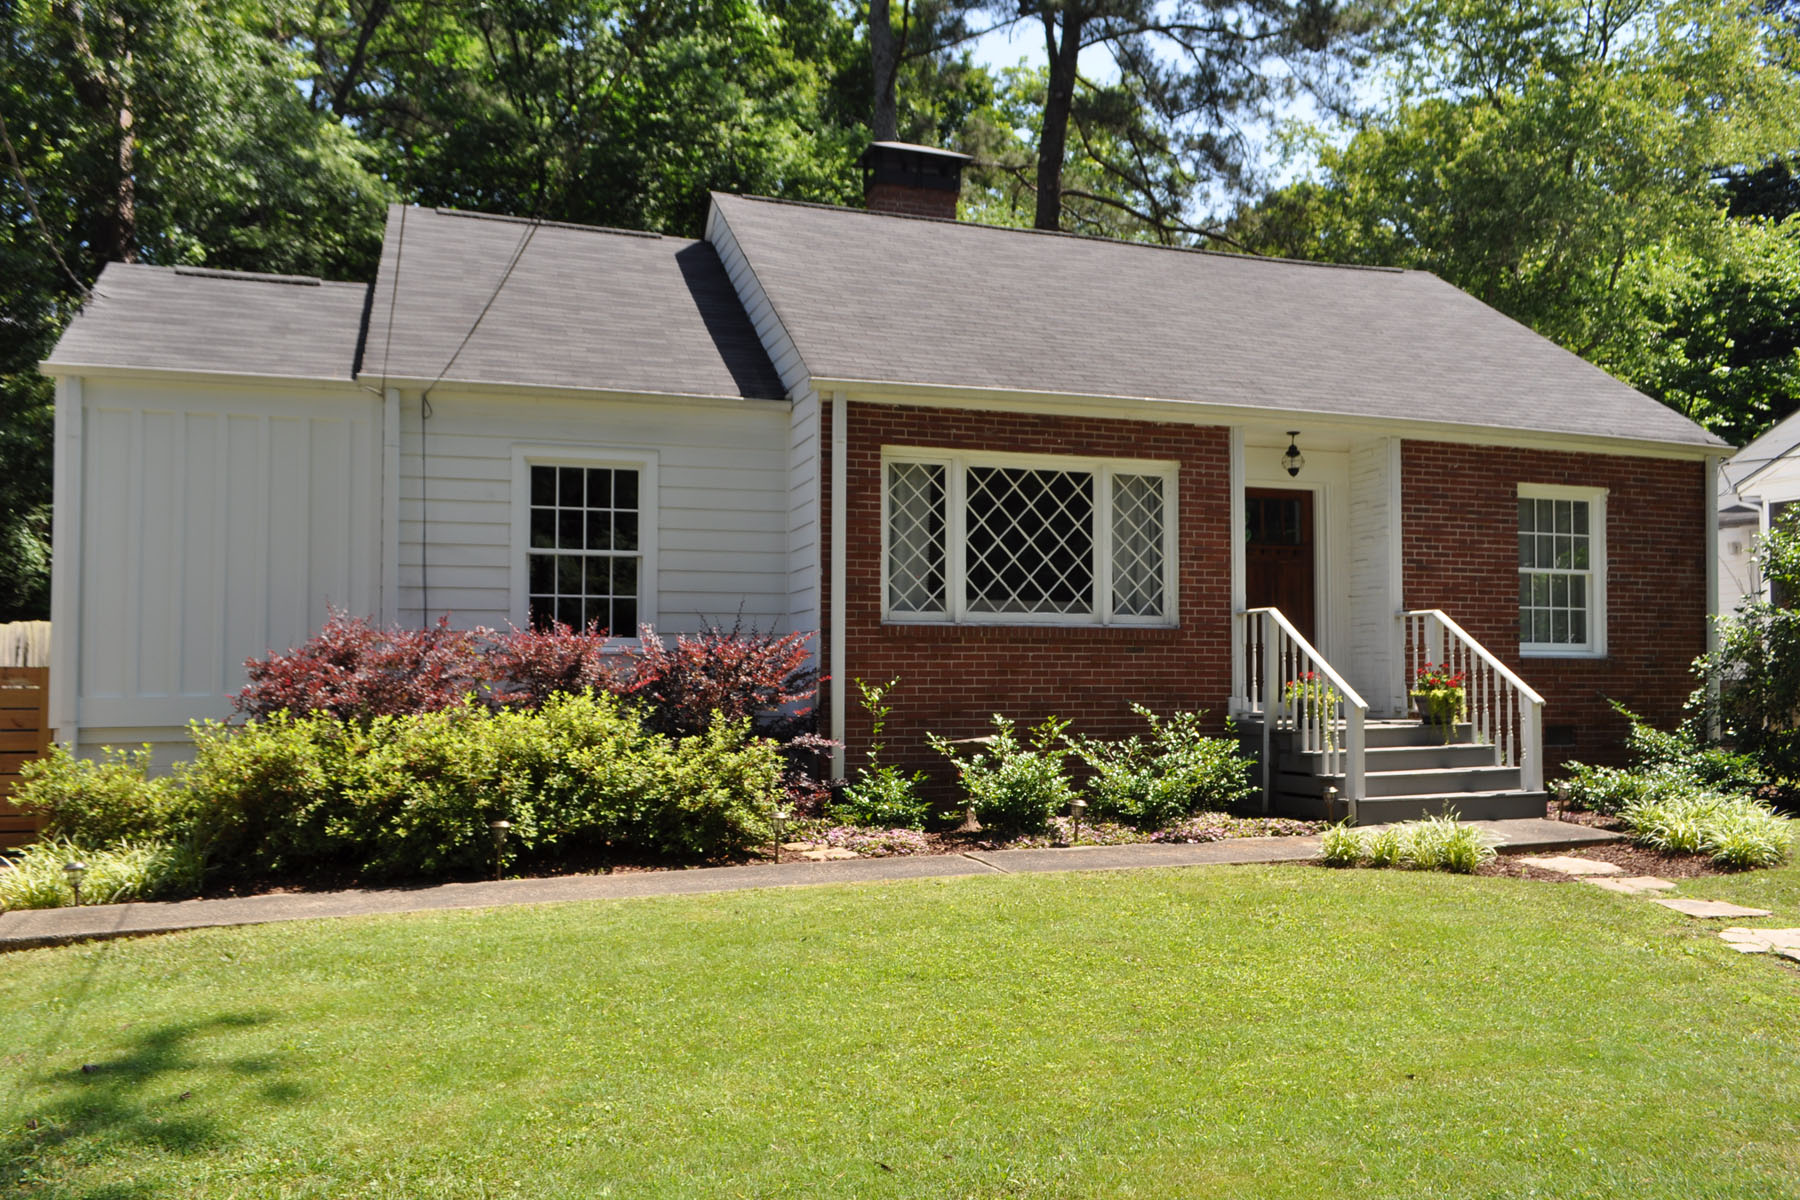 Single Family Home for Rent at Charming Bungalow in Martin Manor! 1002 Lindbergh Drive #3007 Atlanta, Georgia 30324 United States